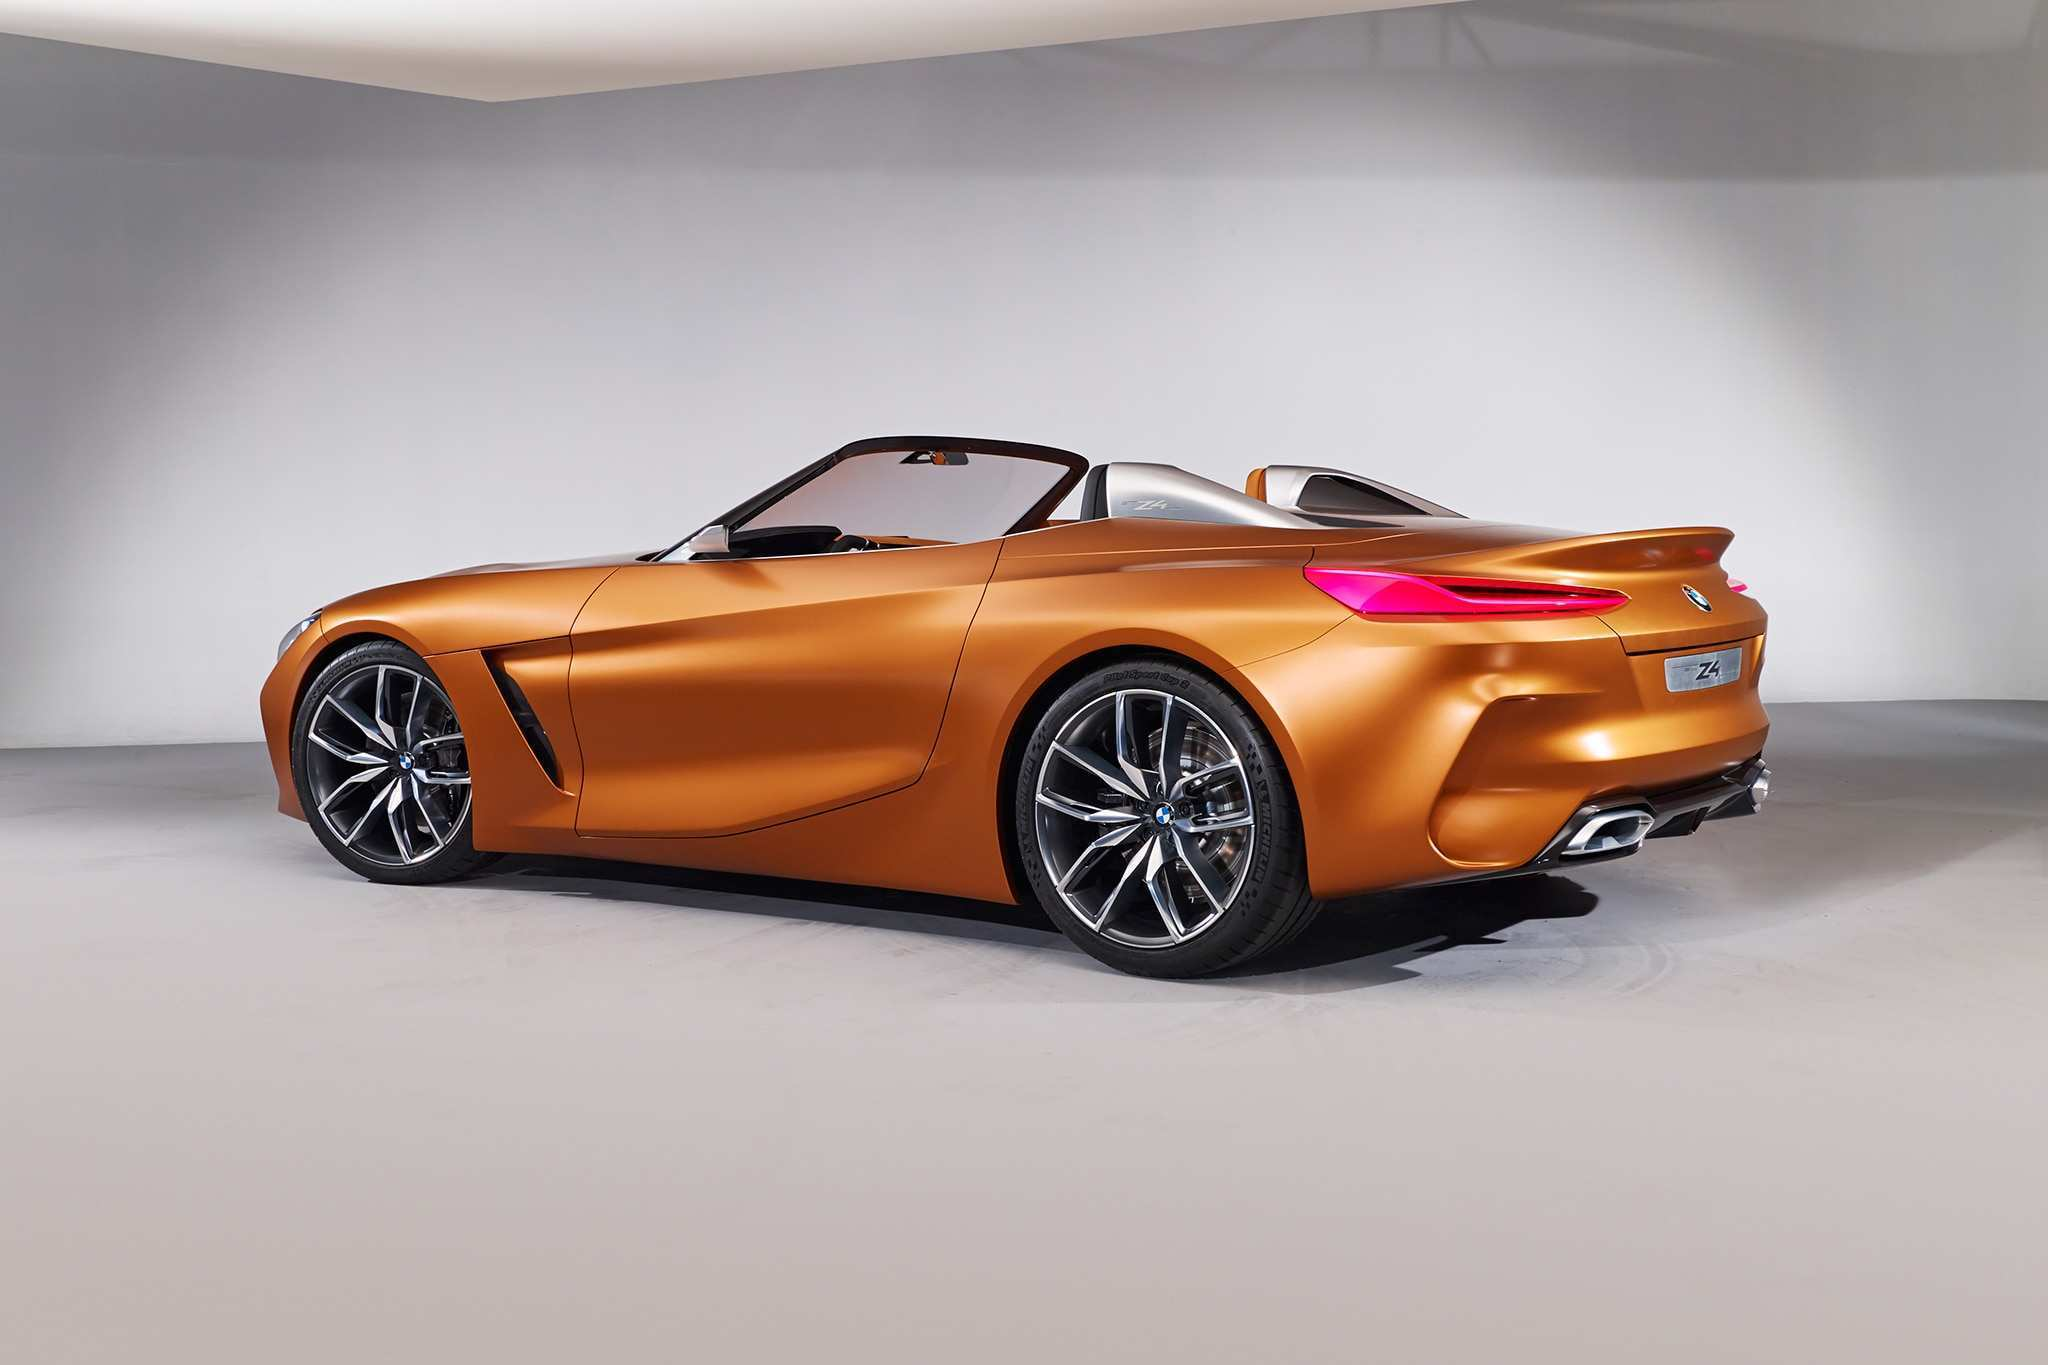 47 Best Review 2019 Bmw Z4 Concept Prices for 2019 Bmw Z4 Concept